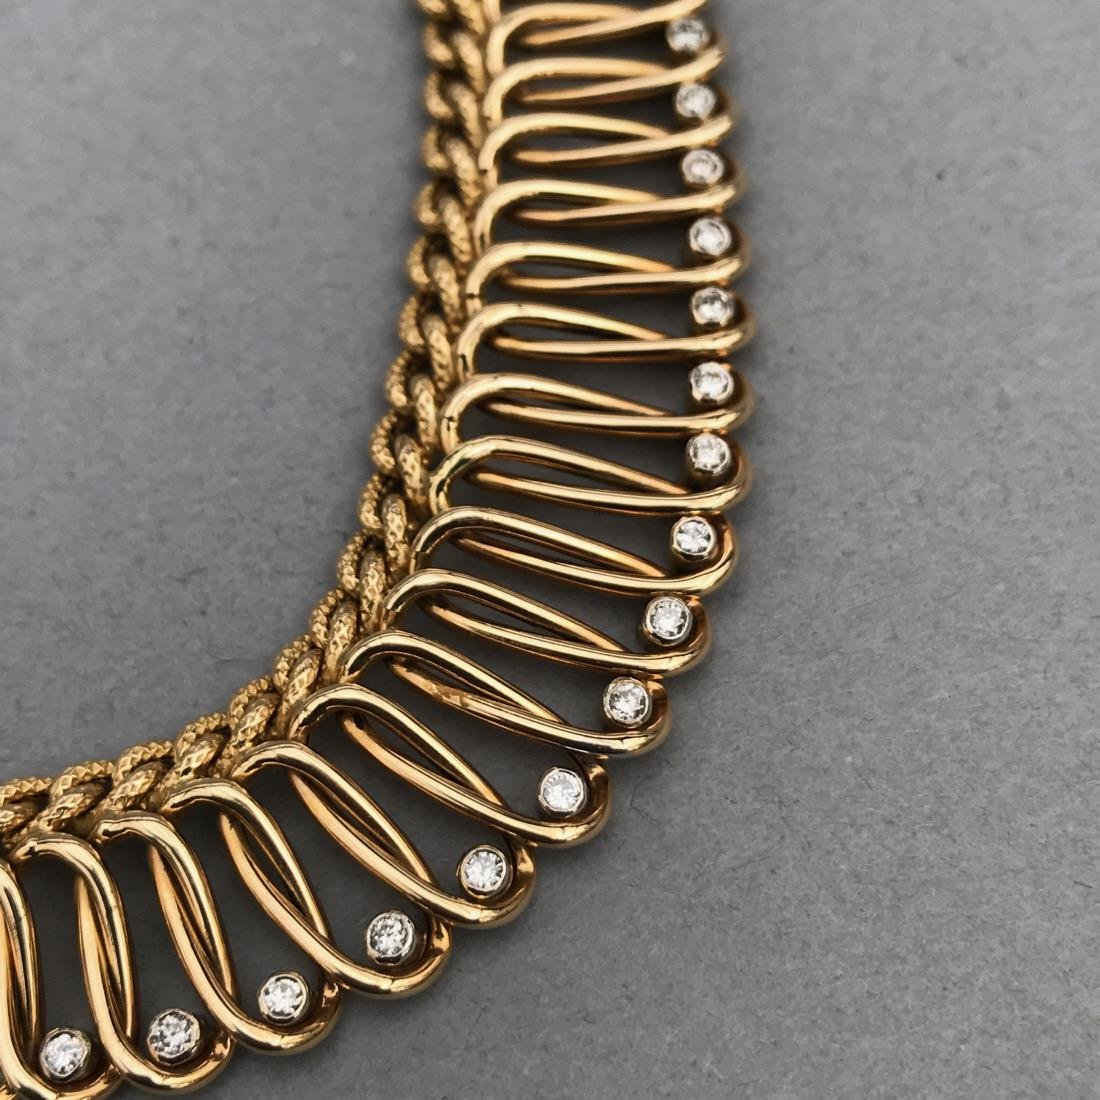 14K Gold Necklace with 18 Diamonds - 7